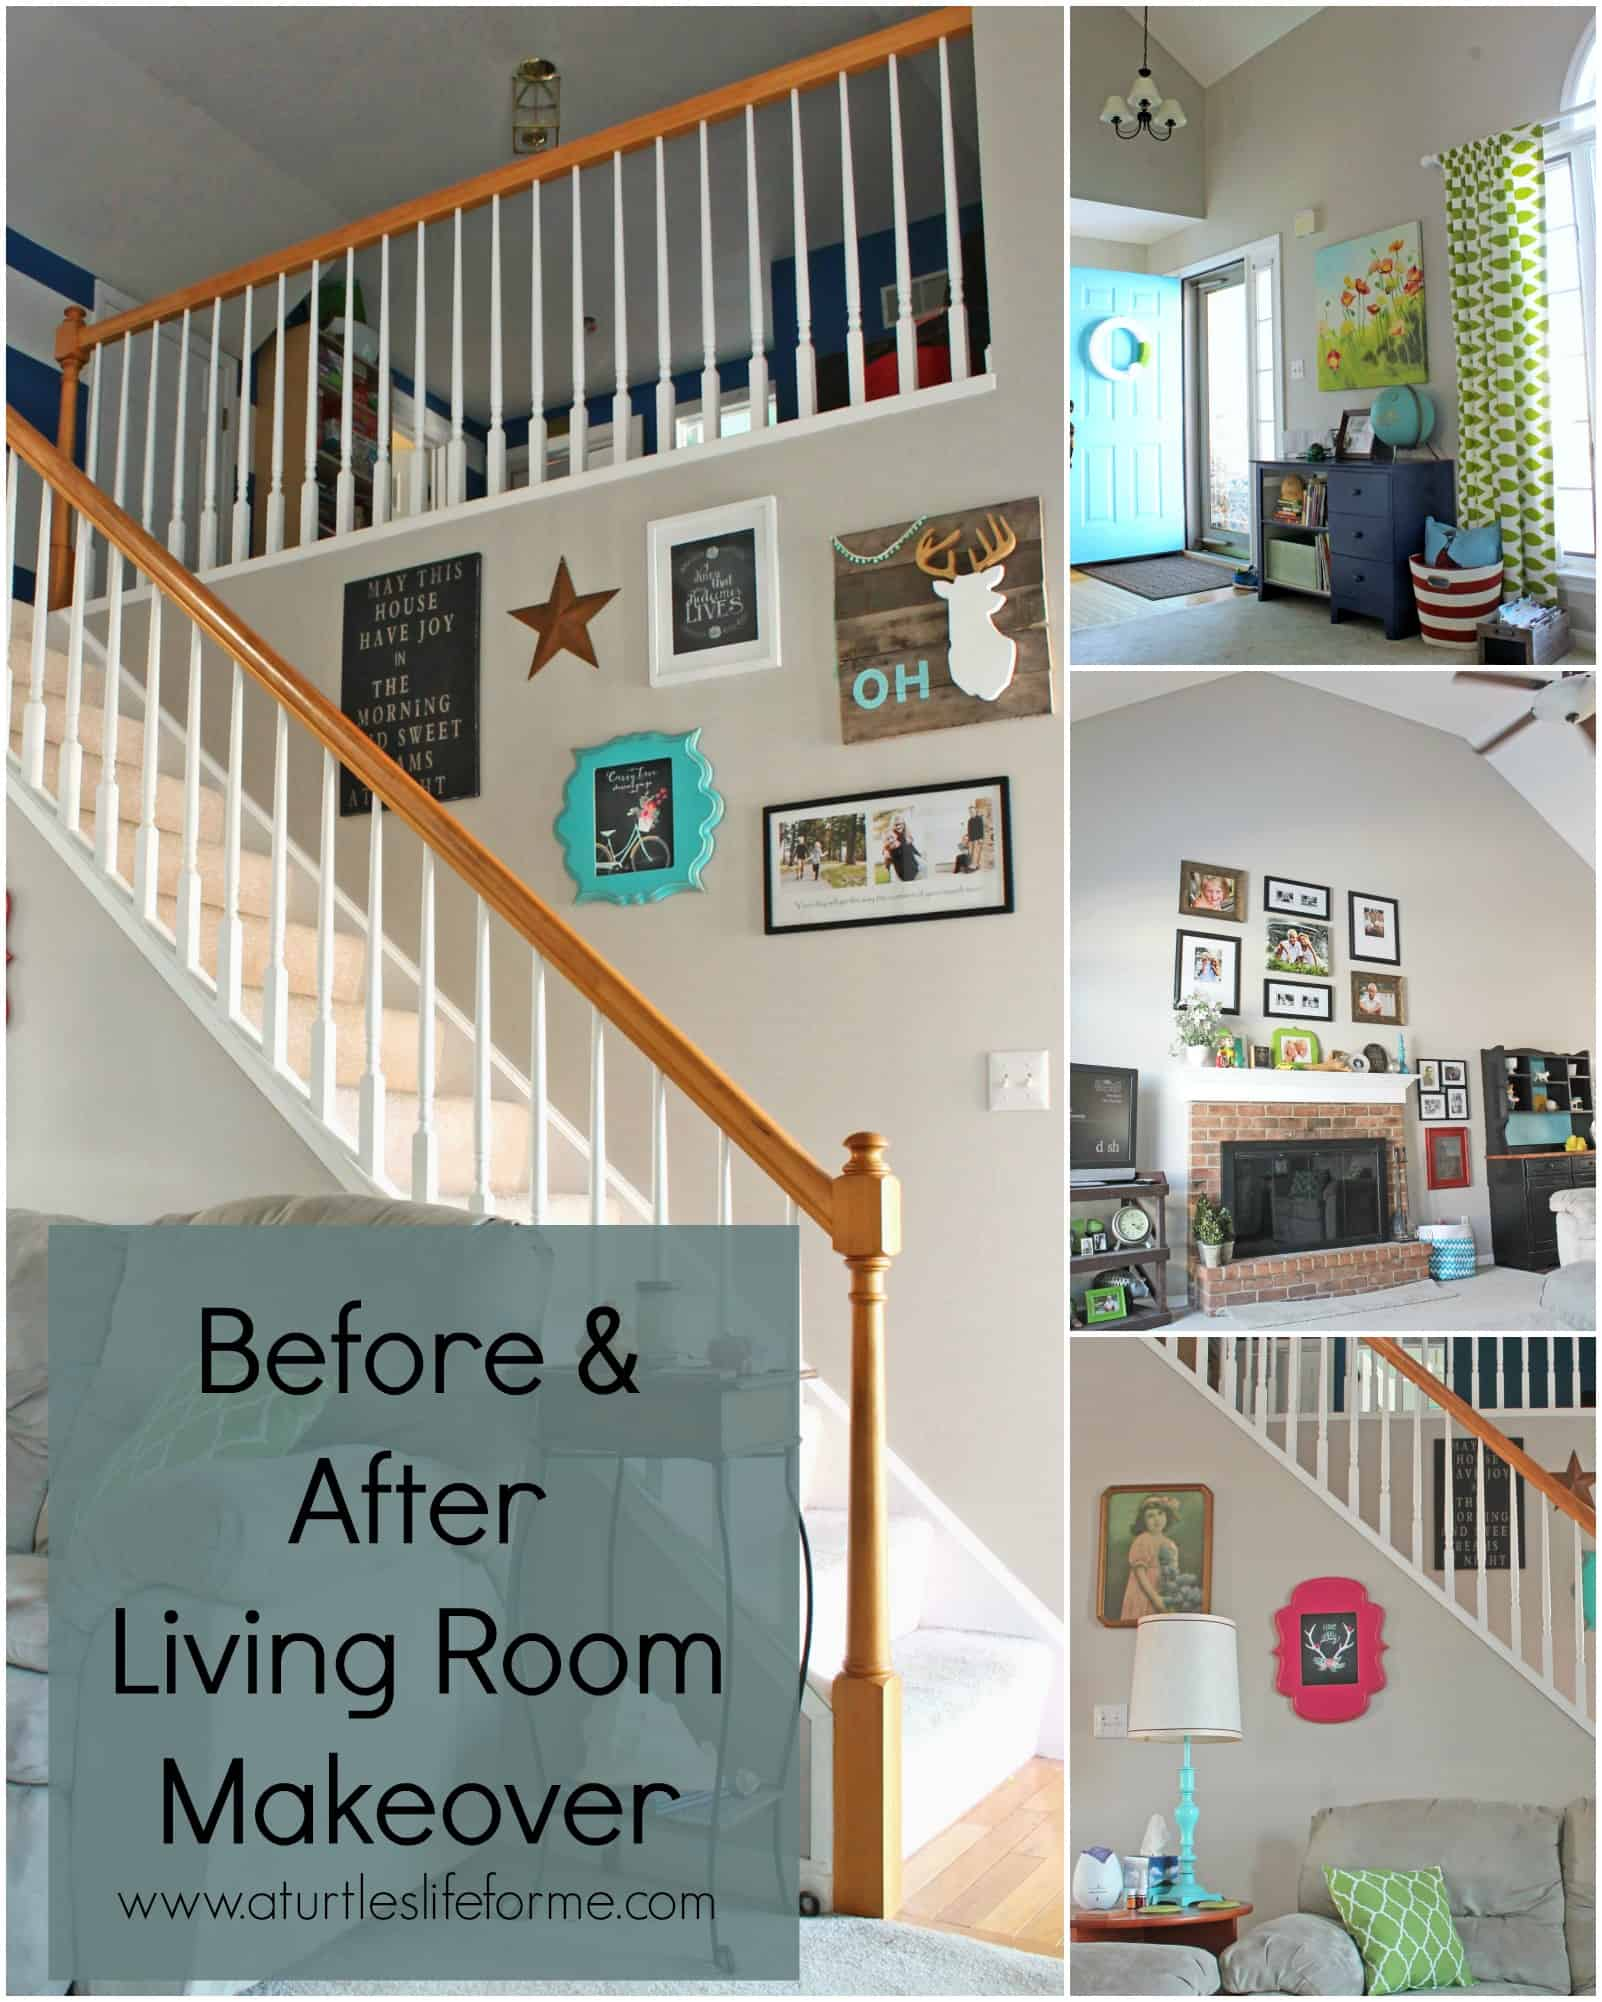 Living Room Makeover: Before And After Living Room Makeover